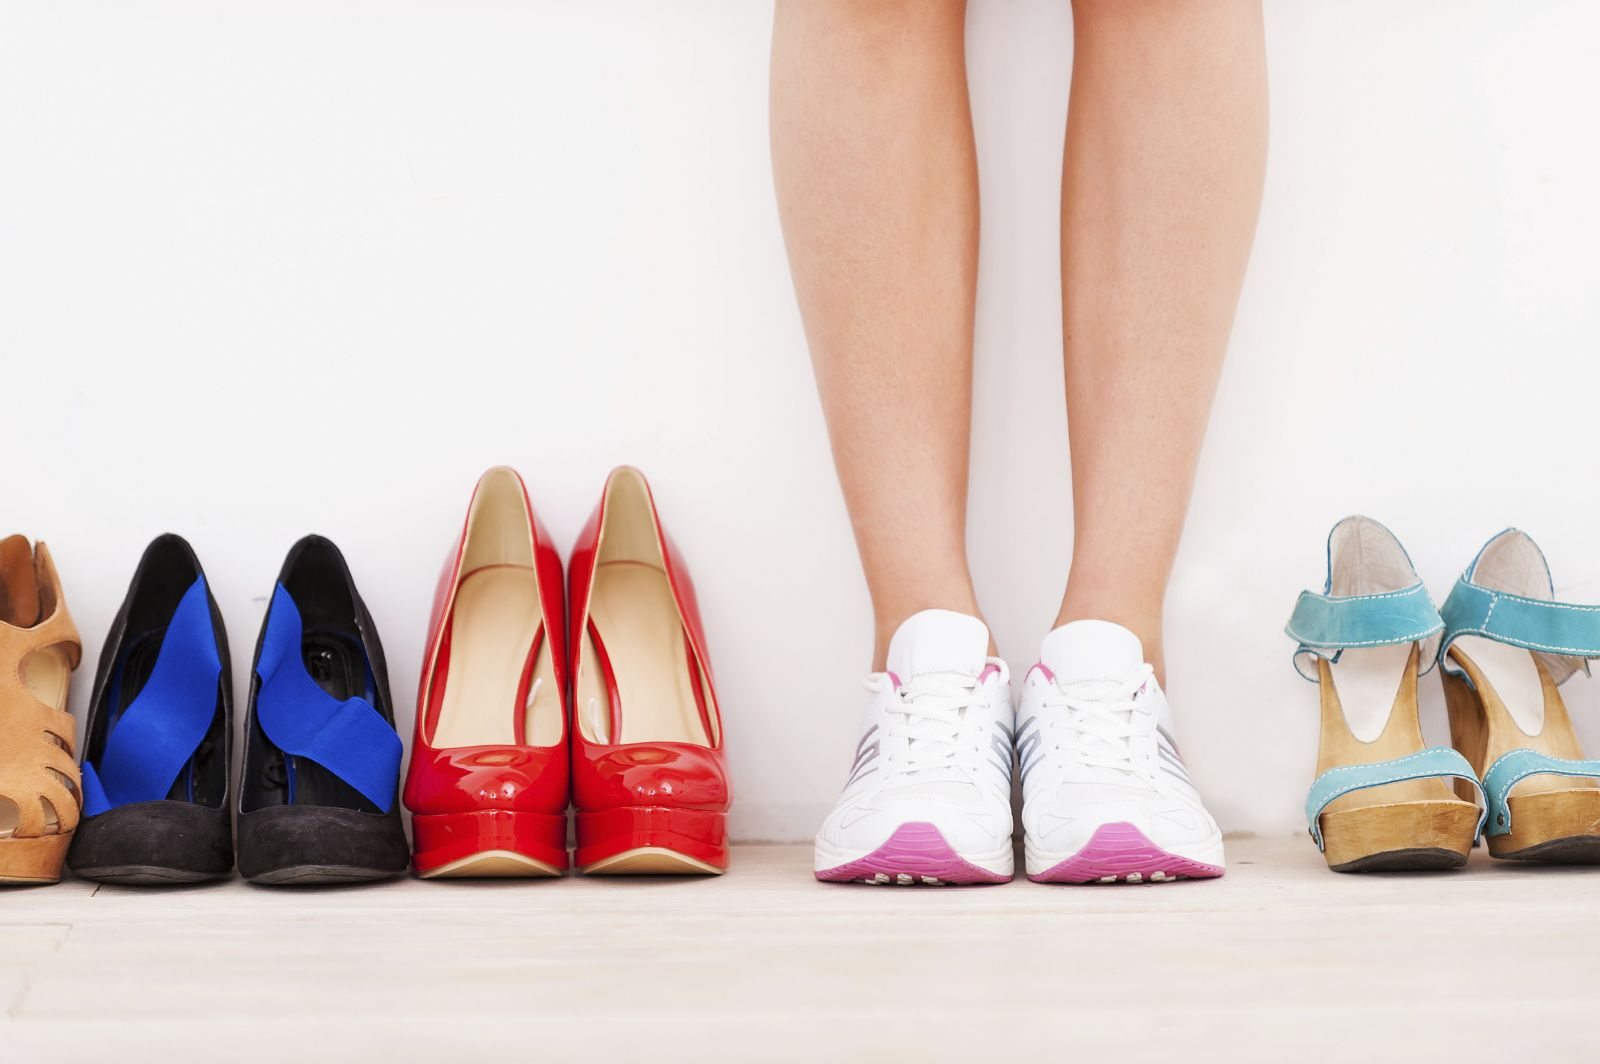 8 tips for buying shoes that are good to your feet